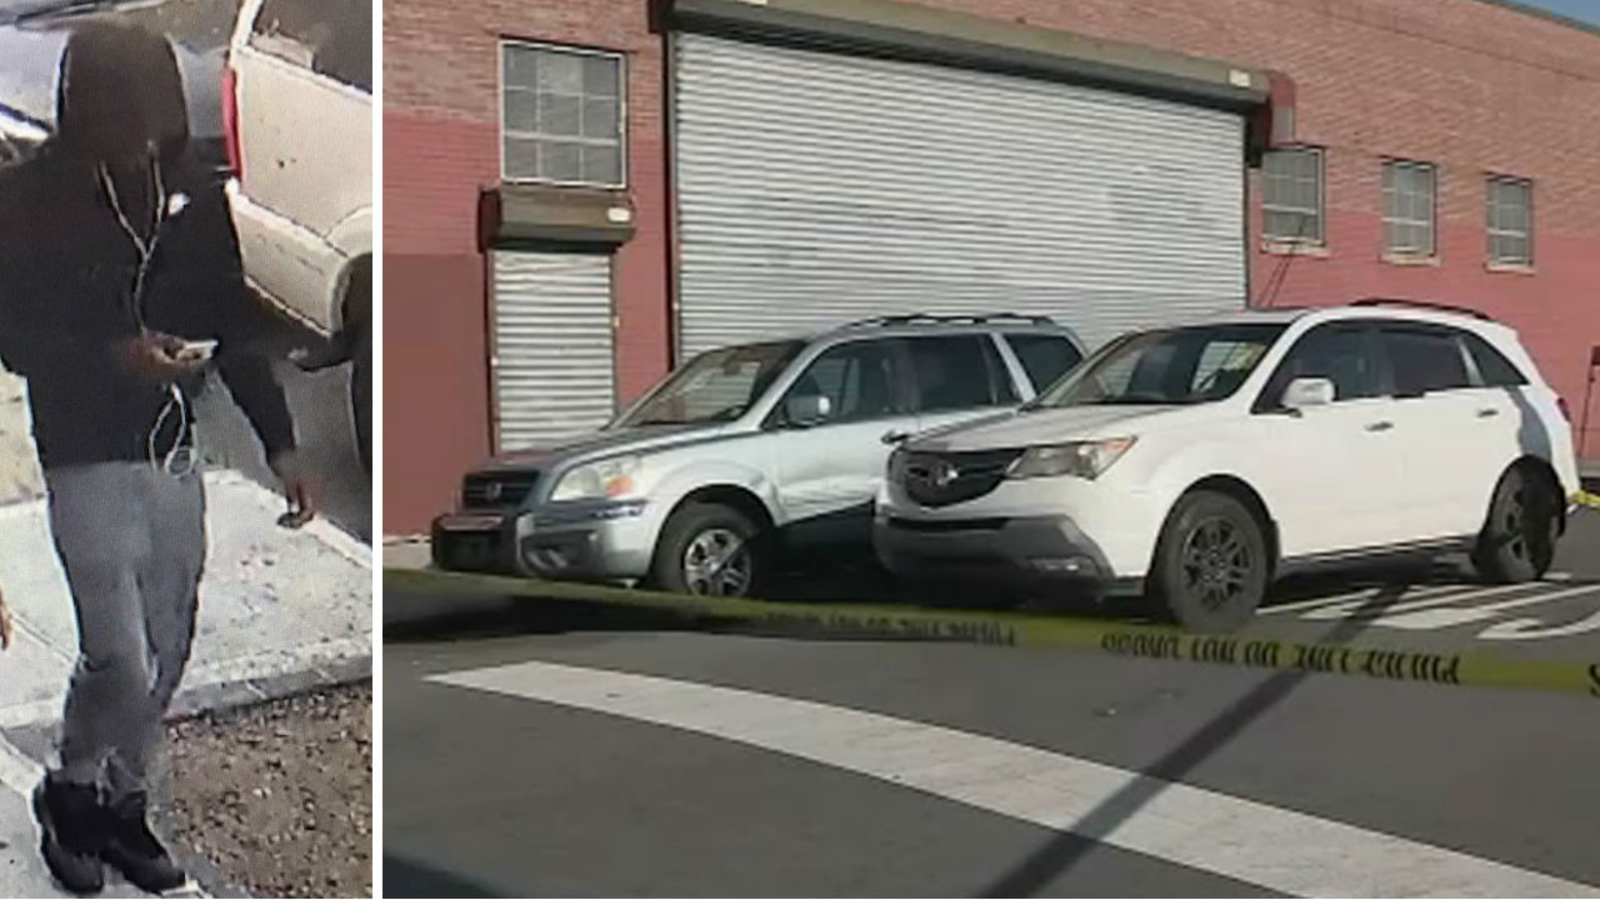 Police searching for man after car stolen with 6-year-old inside in Brooklyn